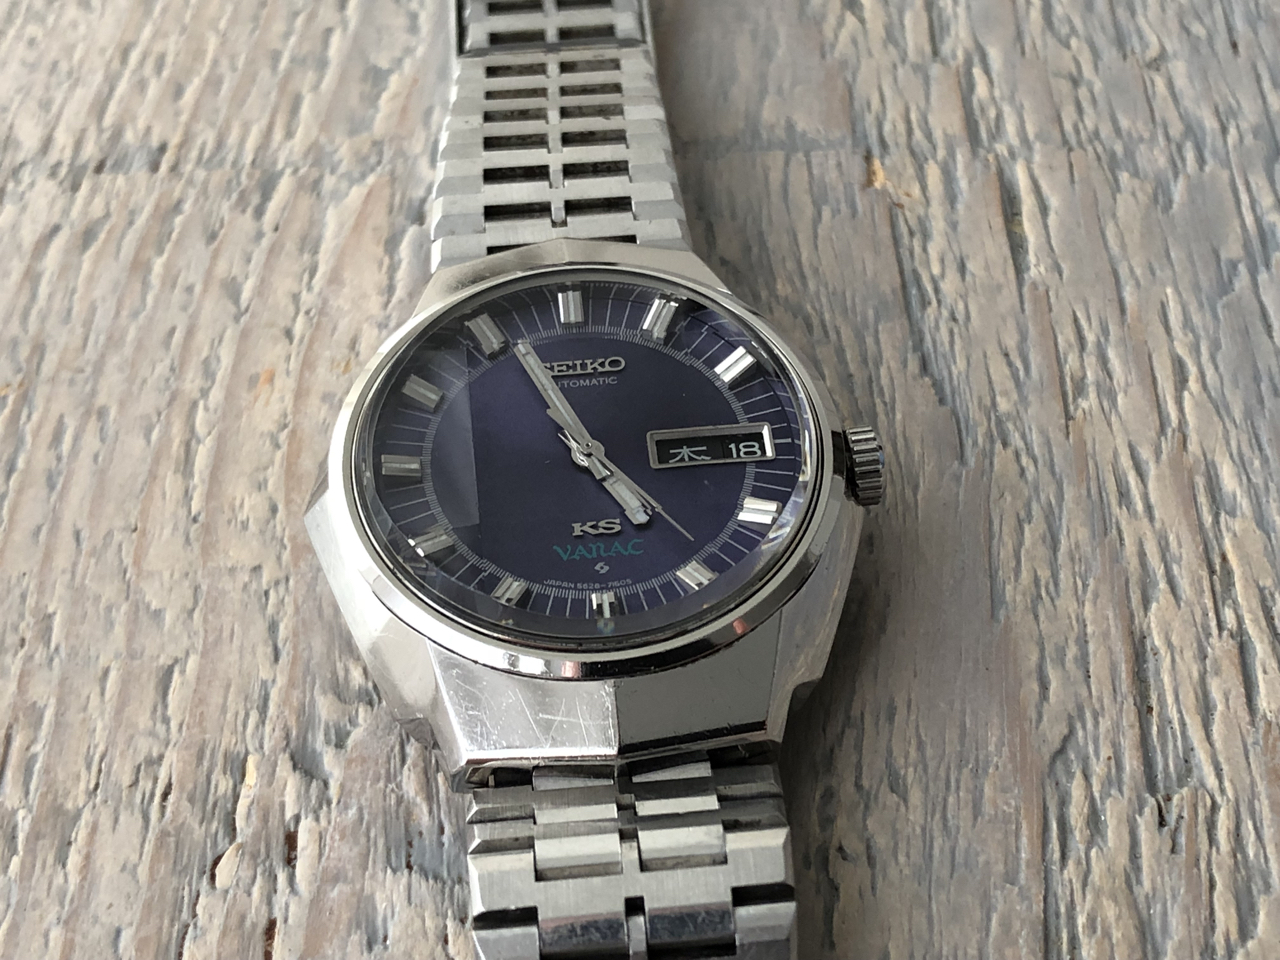 King Seiko Vanac 5626-7150 (Sold)